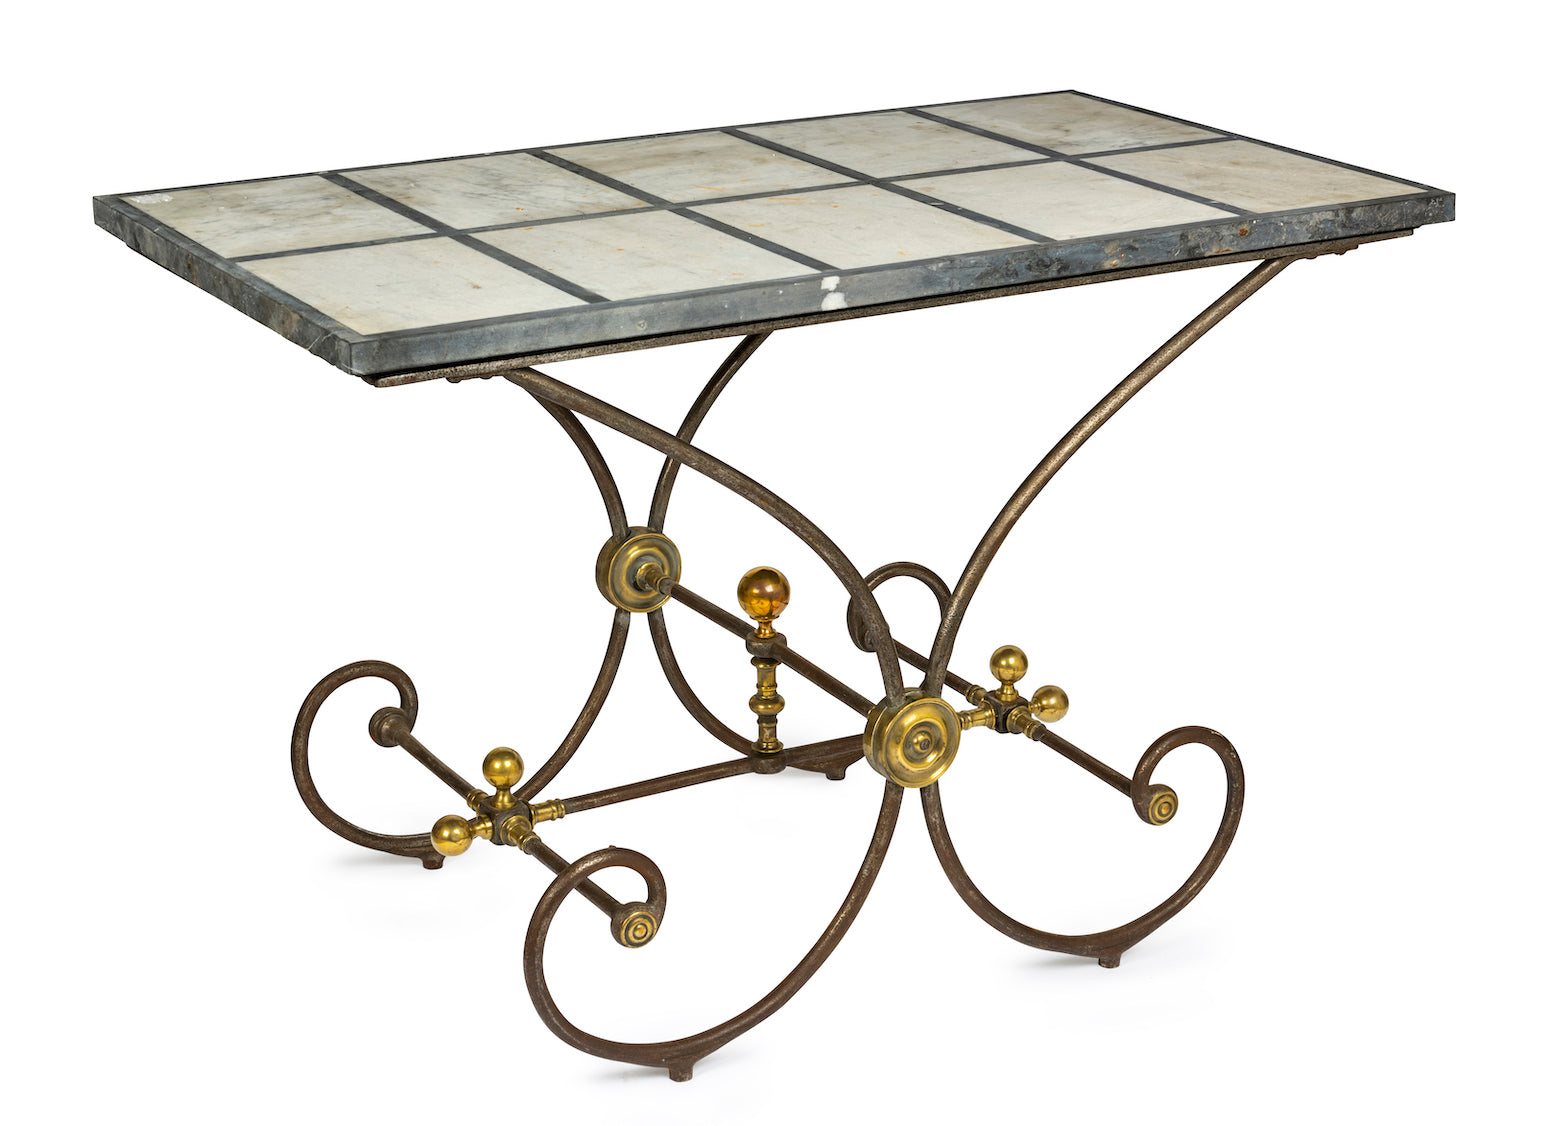 A French Provincial steel and brass patisserie table, 19th Century